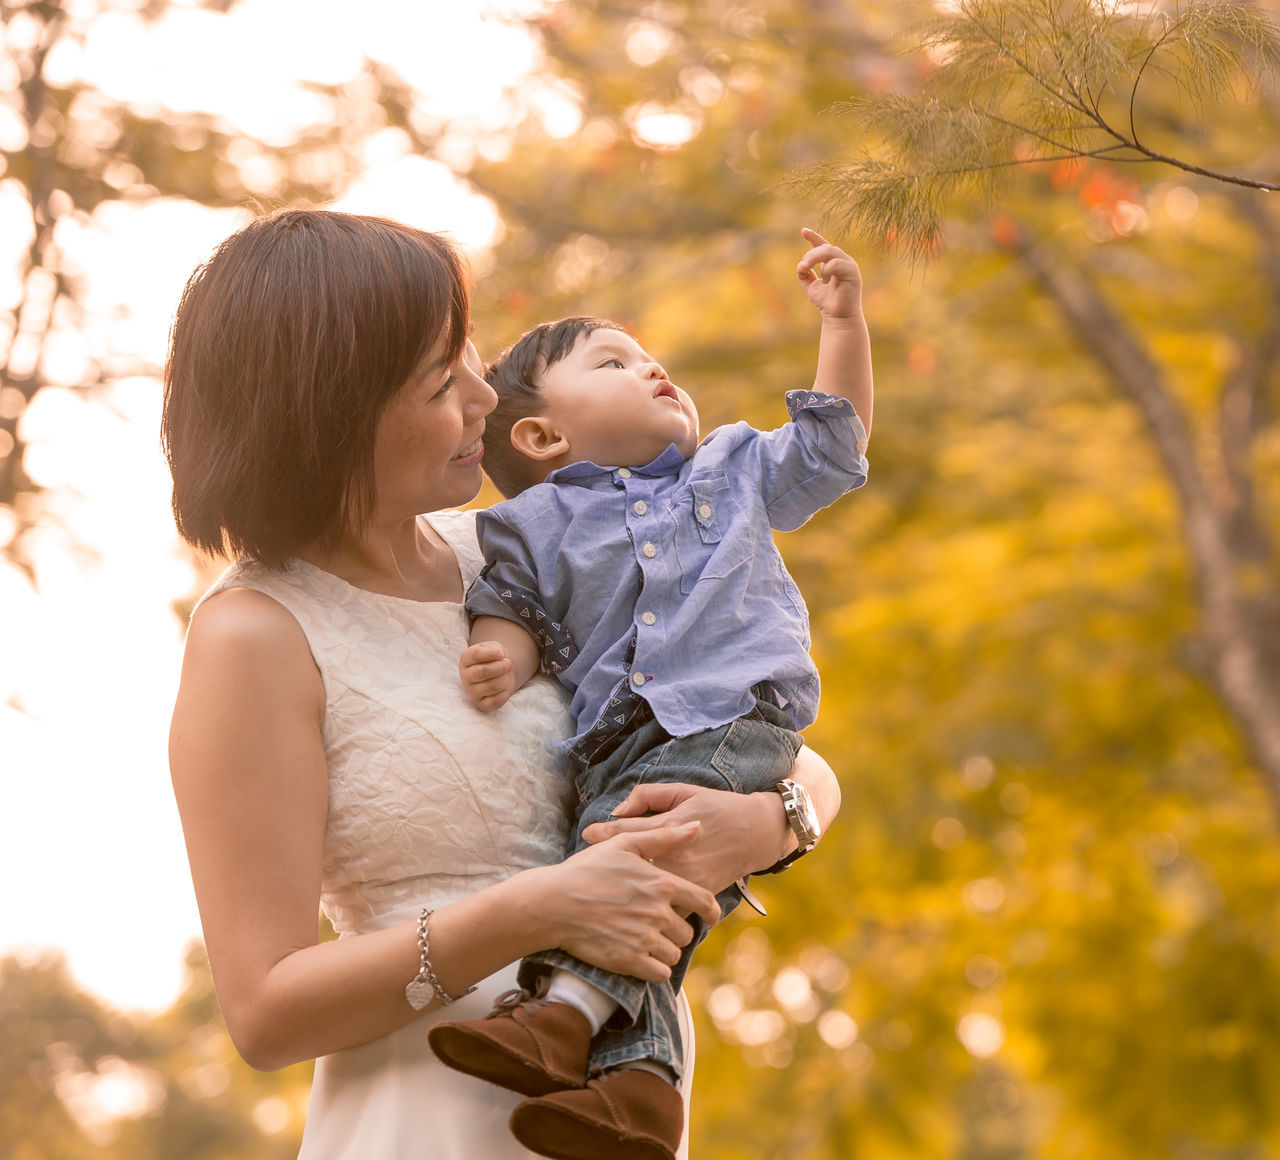 Chinese Family ASIA Asian  Asian Family Baby Bonding Casual Clothing Childhood Chinese Daughter Day Family Family With One Child Focus On Foreground Happiness Leisure Activity Lifestyles Love Mother Outdoors Real People Smiling Son Togetherness Tree Young Women